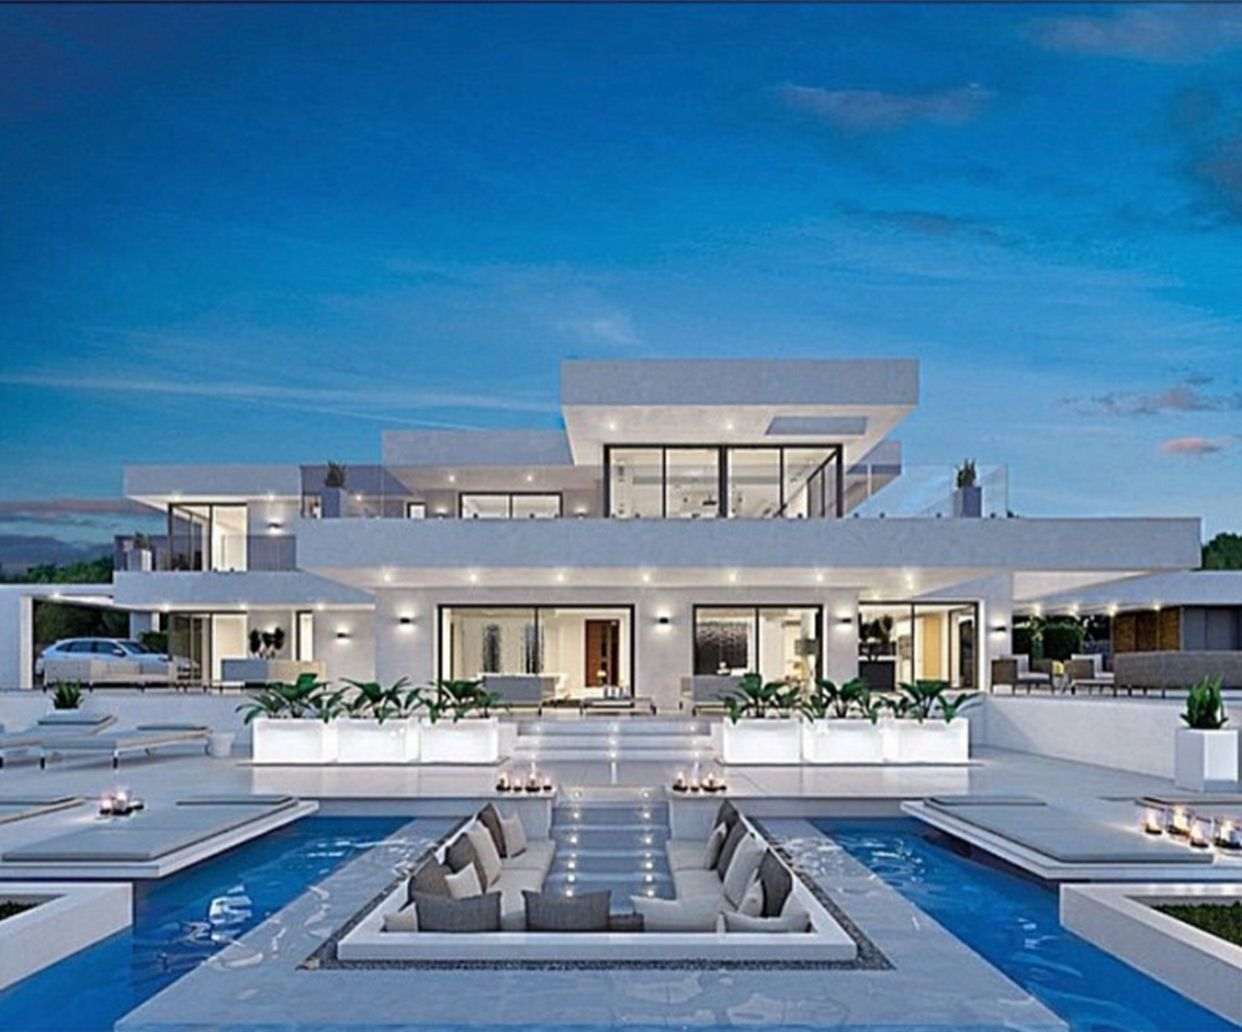 25 Fantastic Luxury Modern House Design Ideas For Live Better Luxury Homes Dream Houses Modern Mansion House Designs Exterior